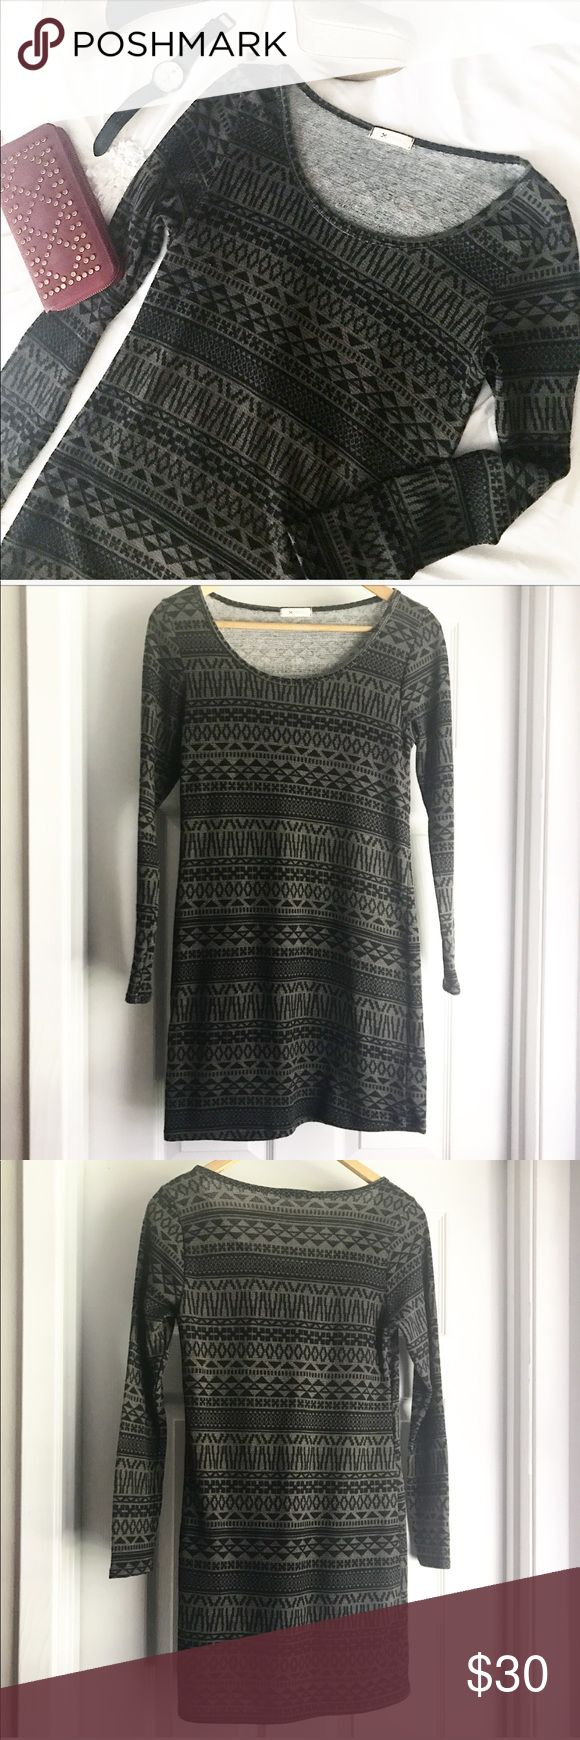 Everly Aztec Sweater Dress This gorgeous piece couldn't be more perfect for the transition into the upcoming fall and winter seasons! Pair it with boots, a vest, or a bright scarf for a trendy look! Black and gray Aztec pattern and bodycon style fit! Excellent condition! Everly Dresses Long Sleeve